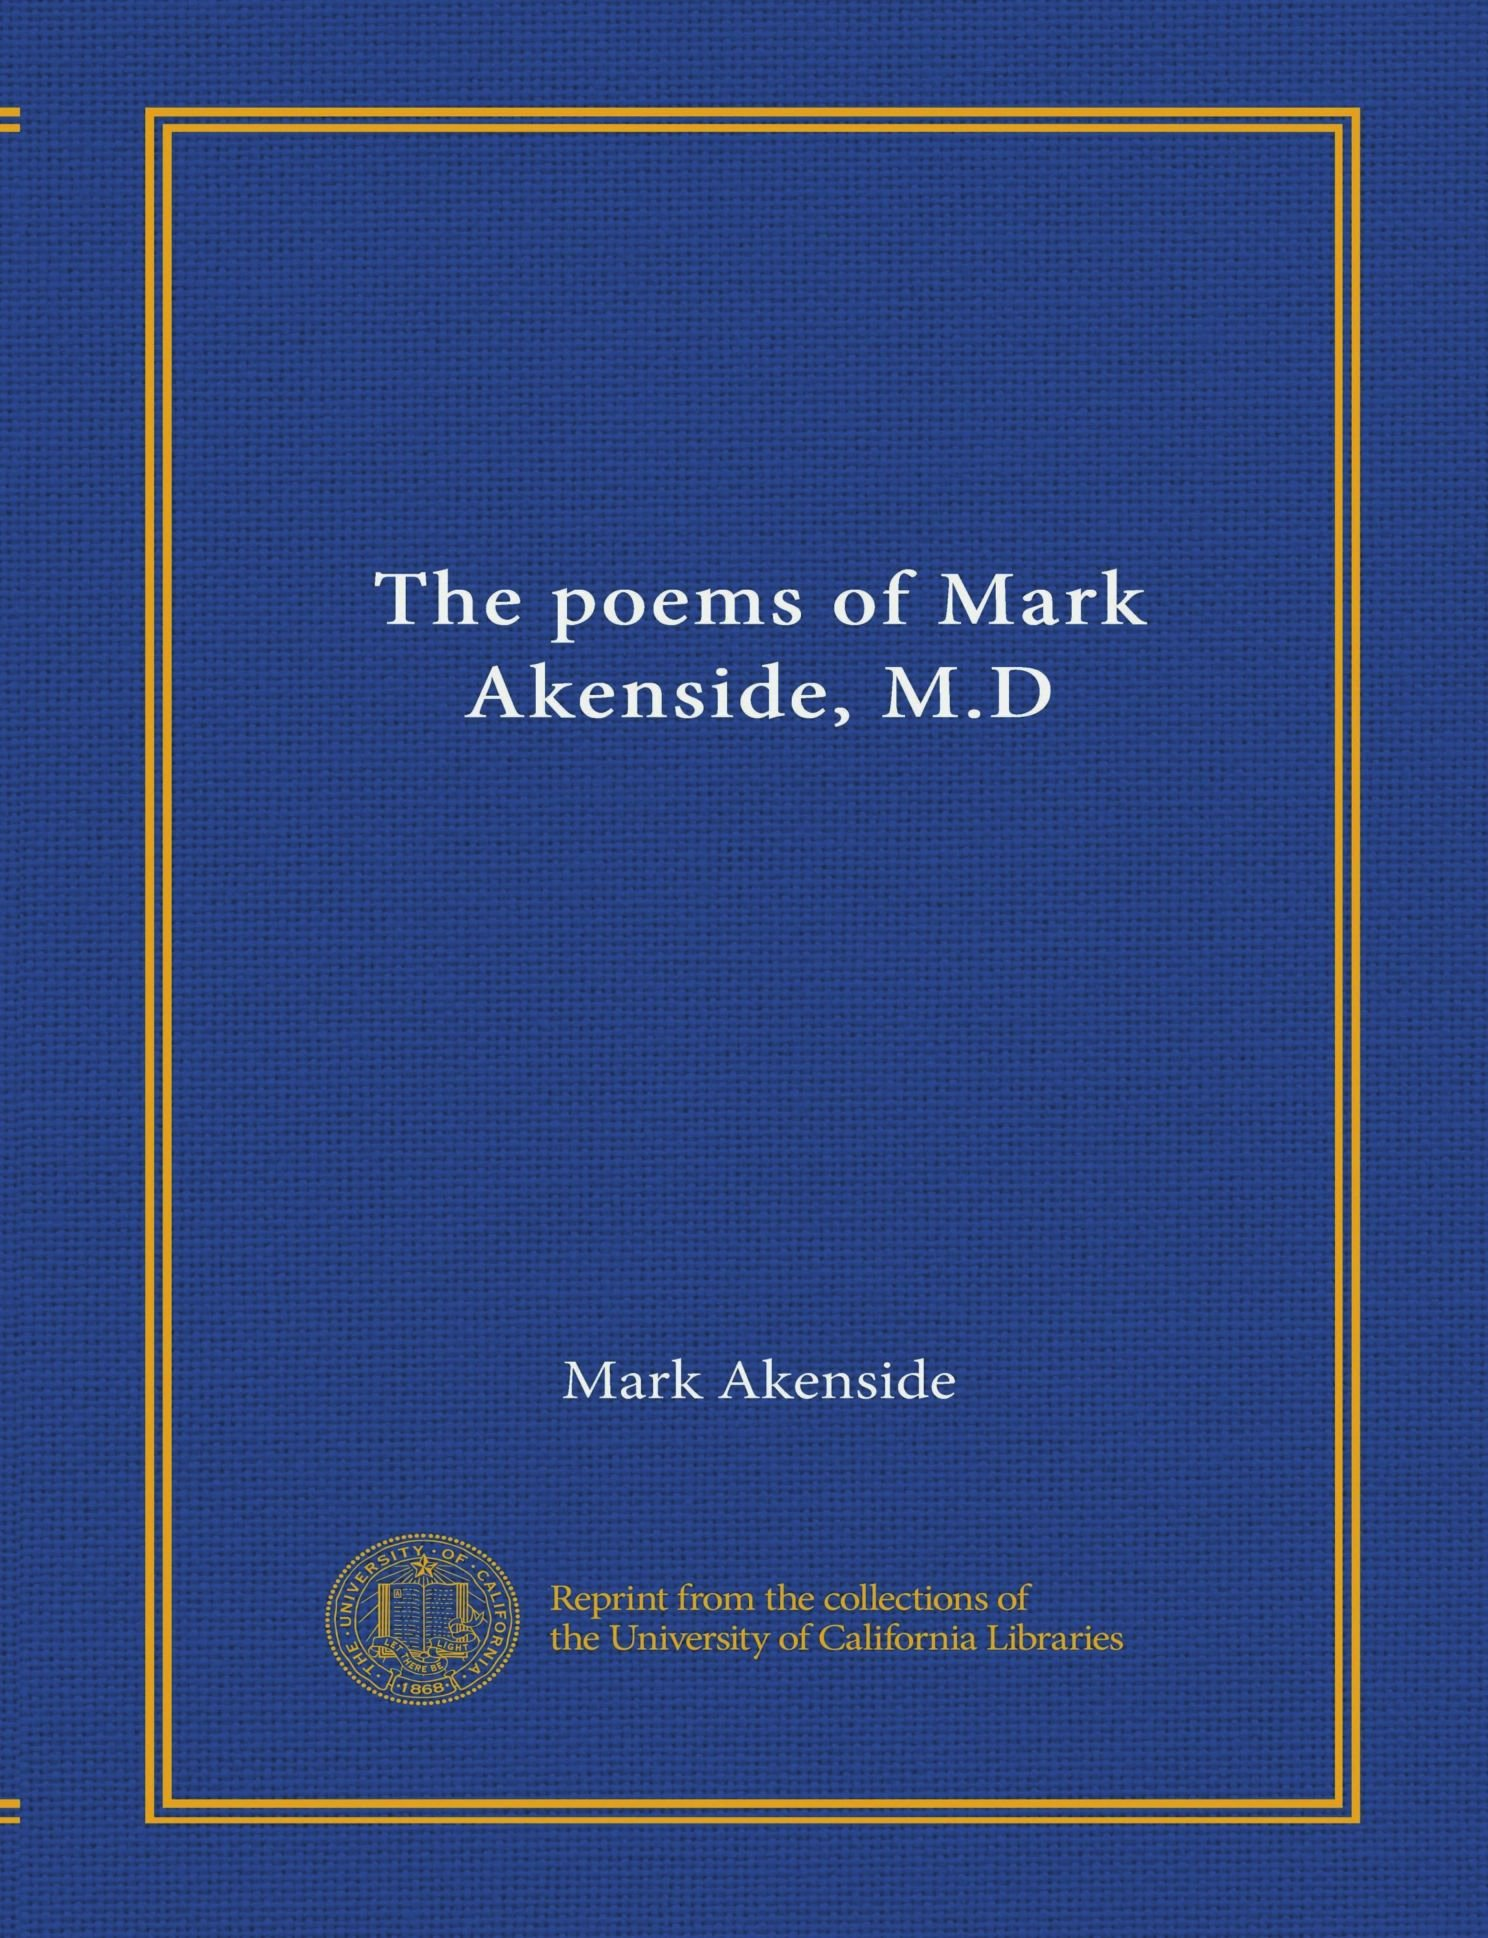 Download The poems of Mark Akenside, M.D PDF